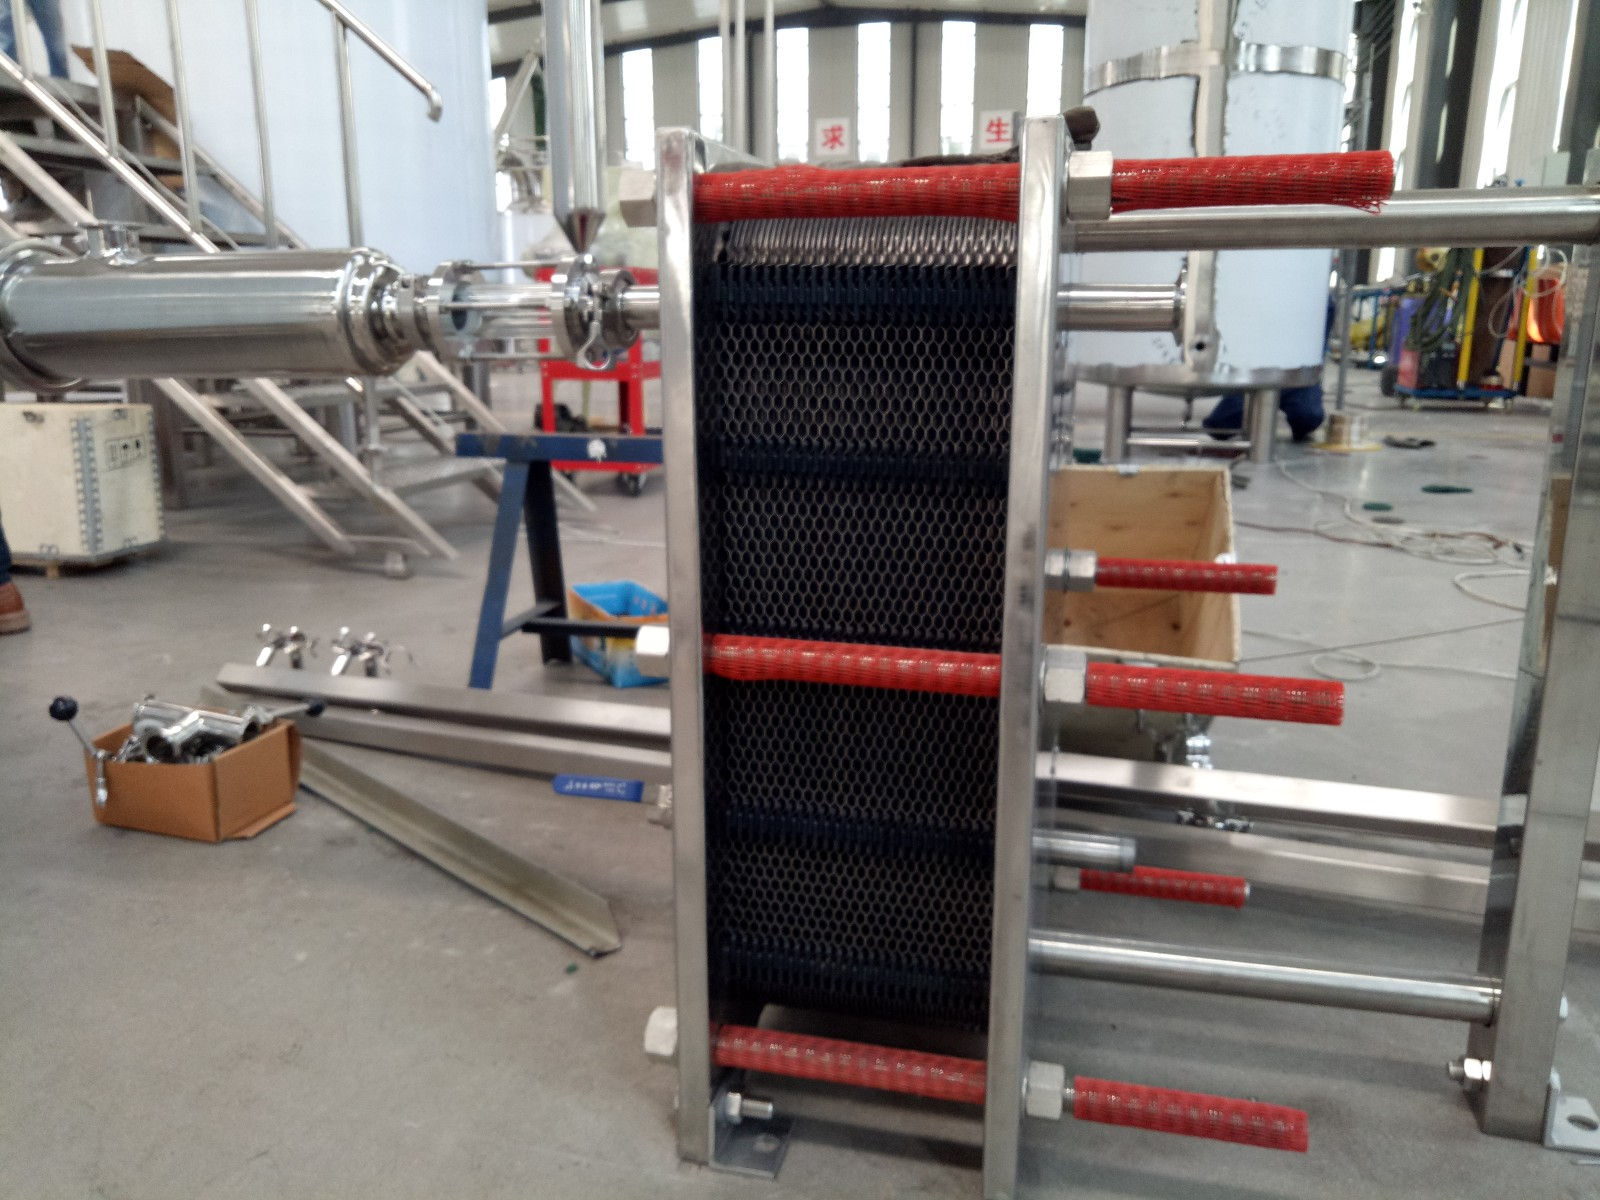 High quality Draught Beer Plant Equipment Quotes,China Draught Beer Plant Equipment Factory,Draught Beer Plant Equipment Purchasing